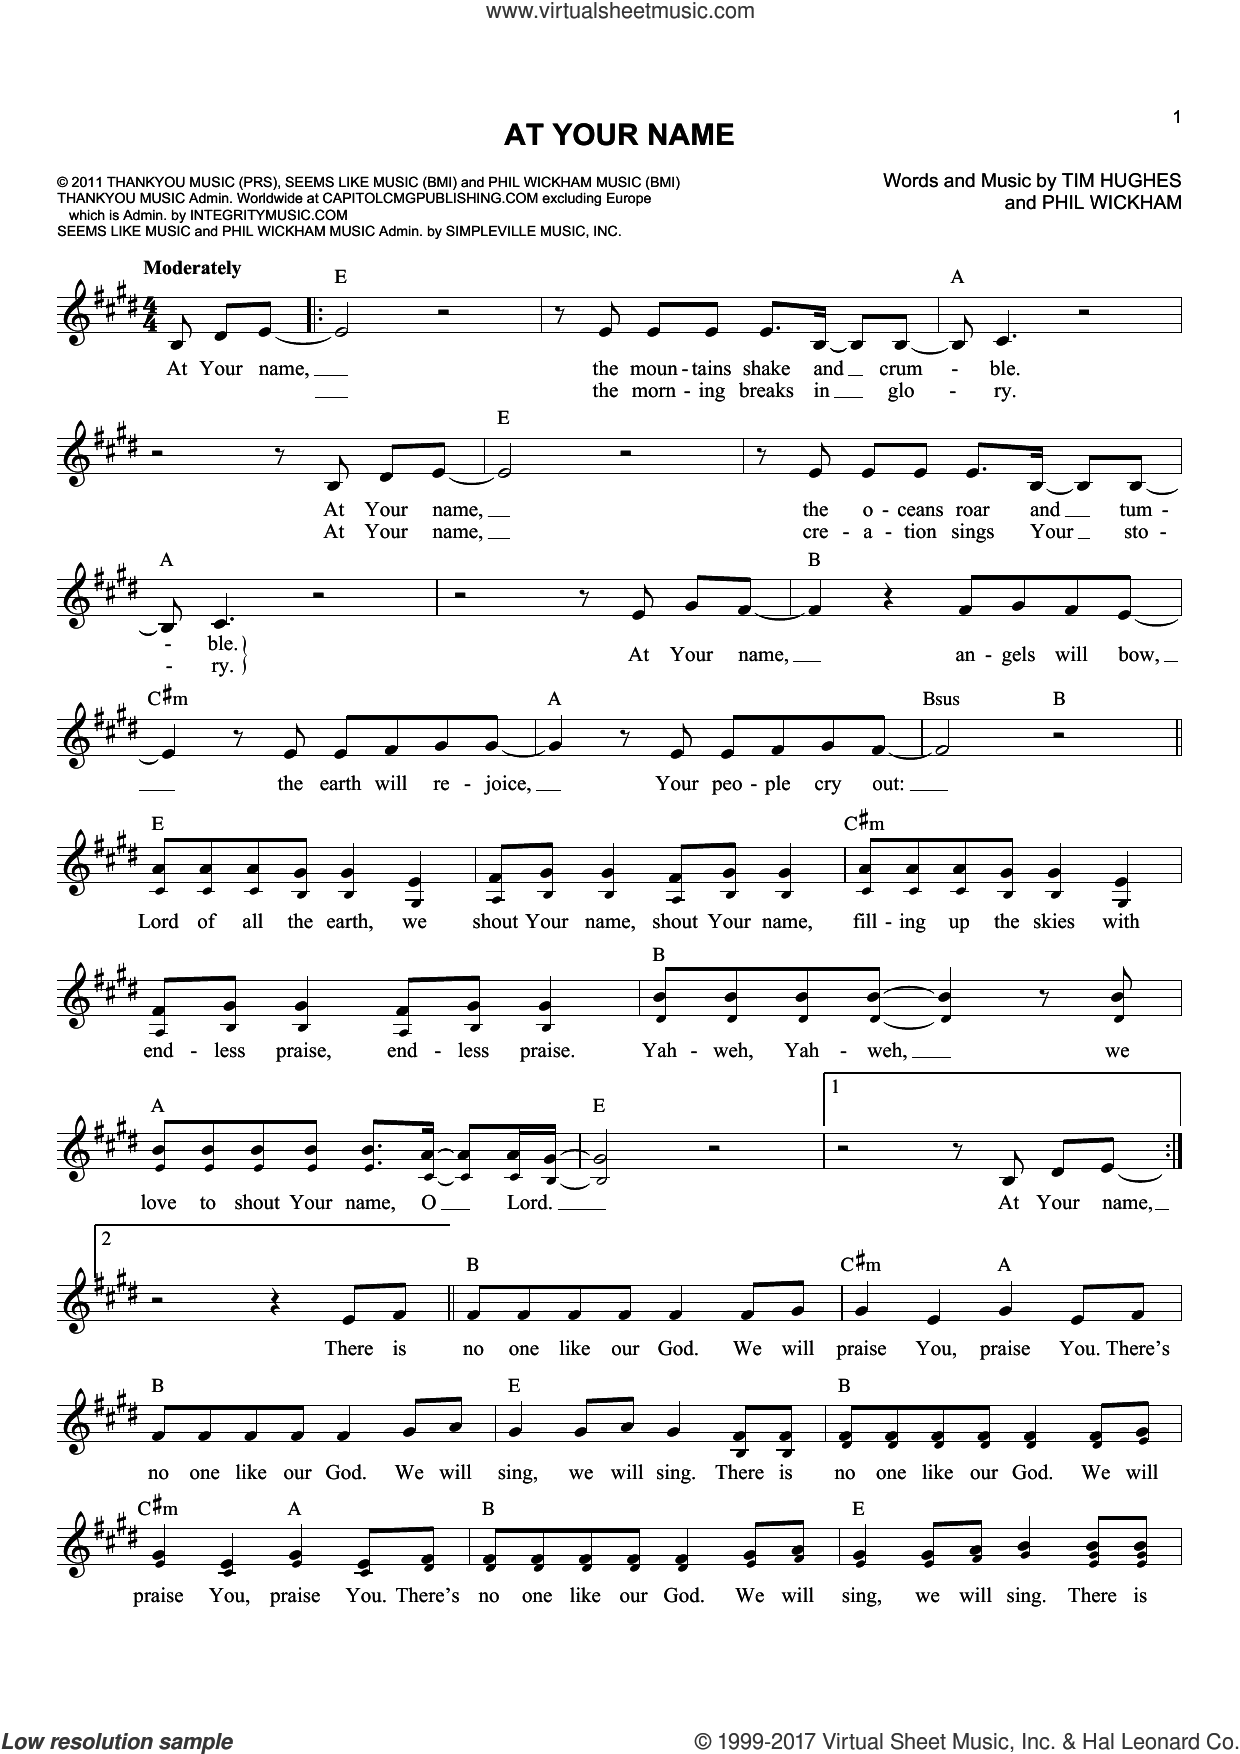 At Your Name sheet music for voice and other instruments (fake book) by Tim Hughes and Phil Wickham, intermediate skill level